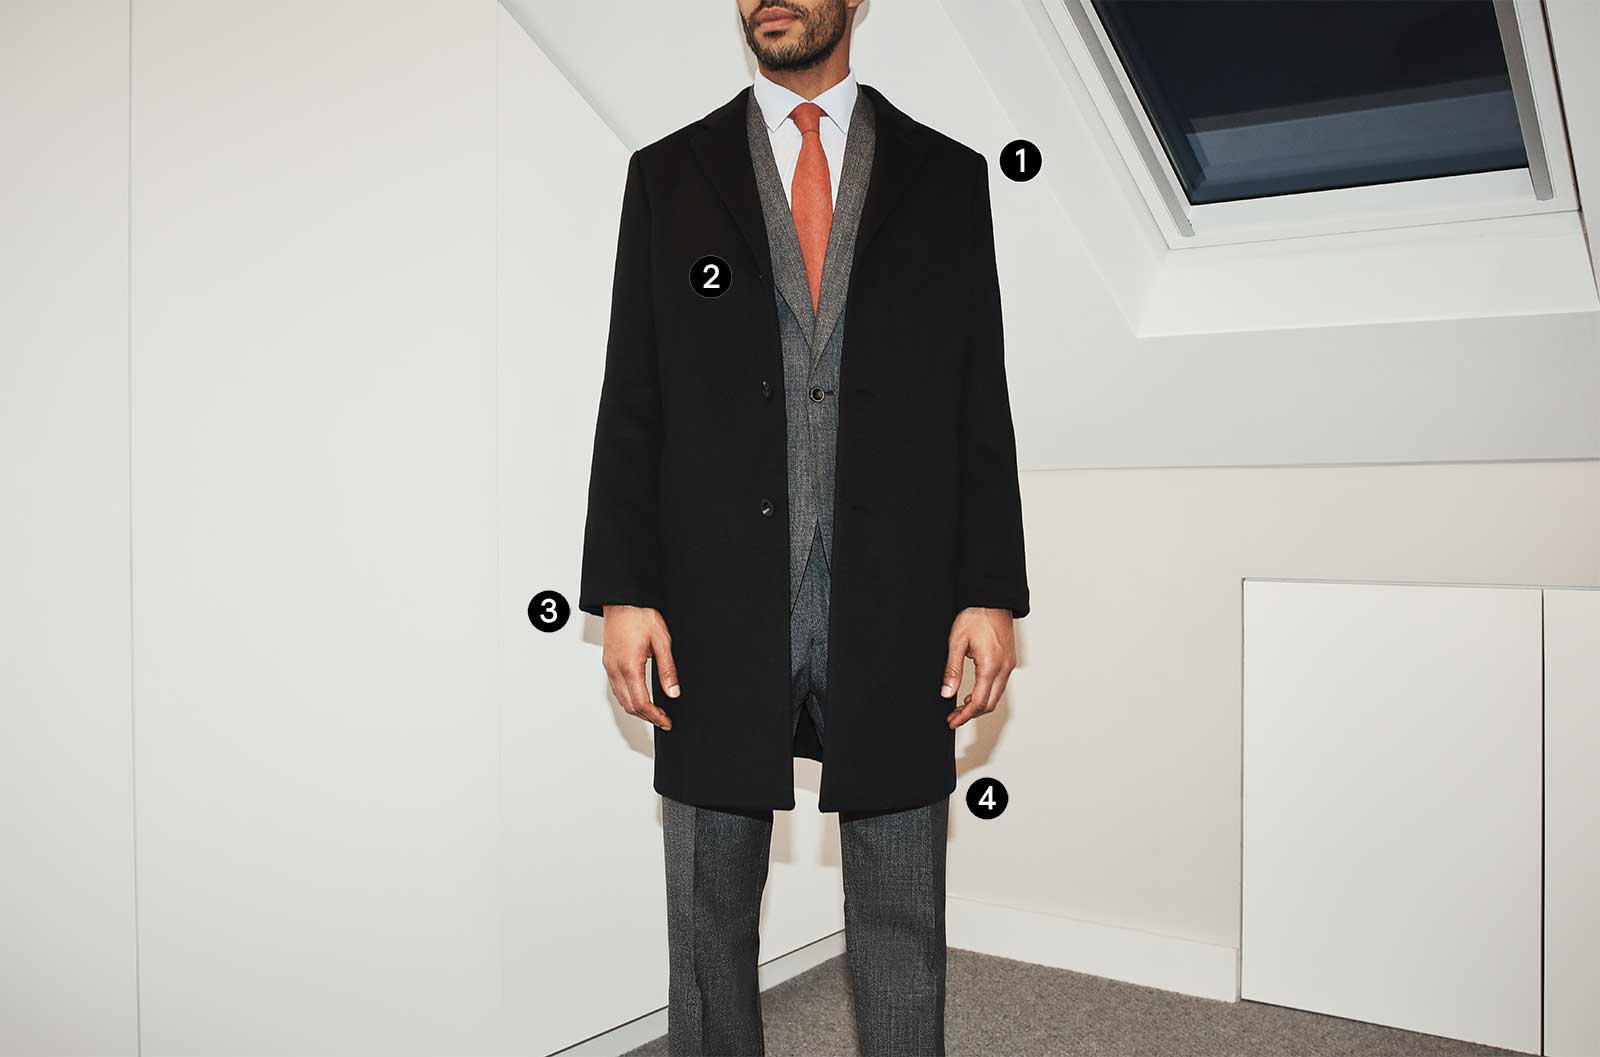 Image result for how overcoat sleeve fit